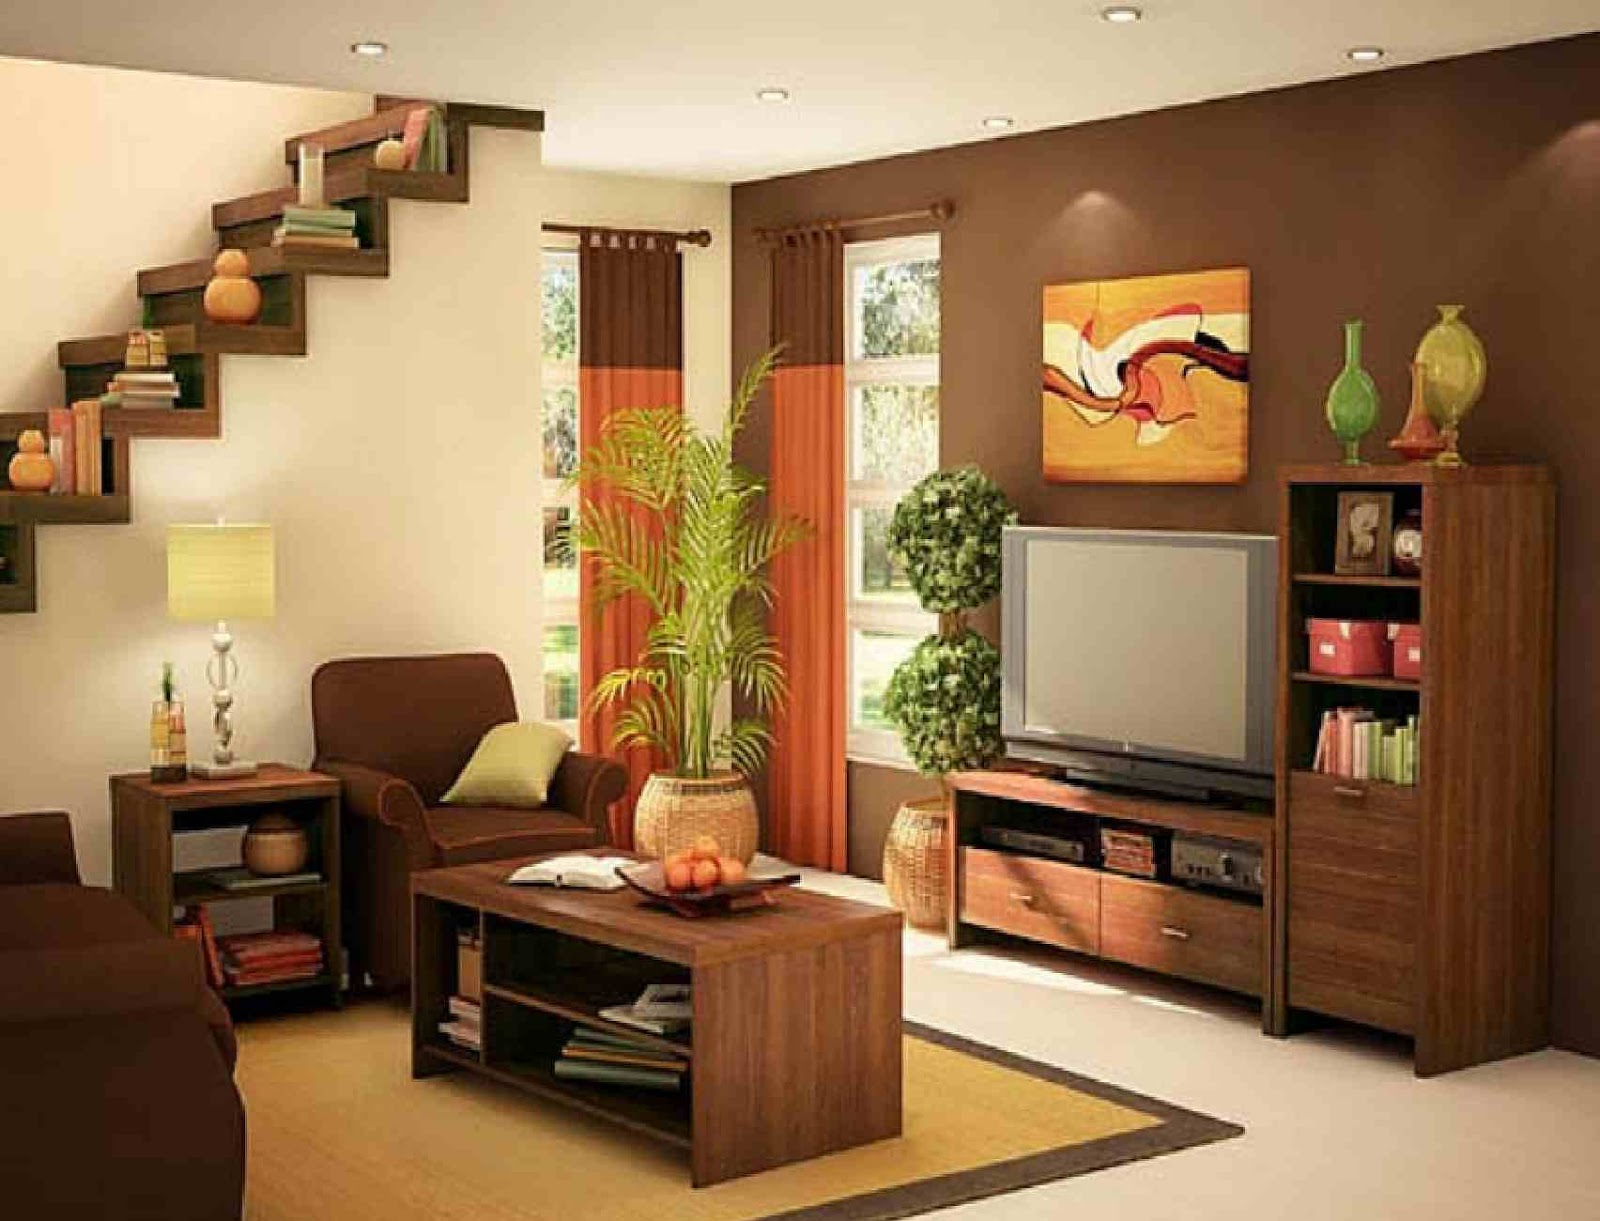 Home interior designs simple living room designs for Living room ideas simple